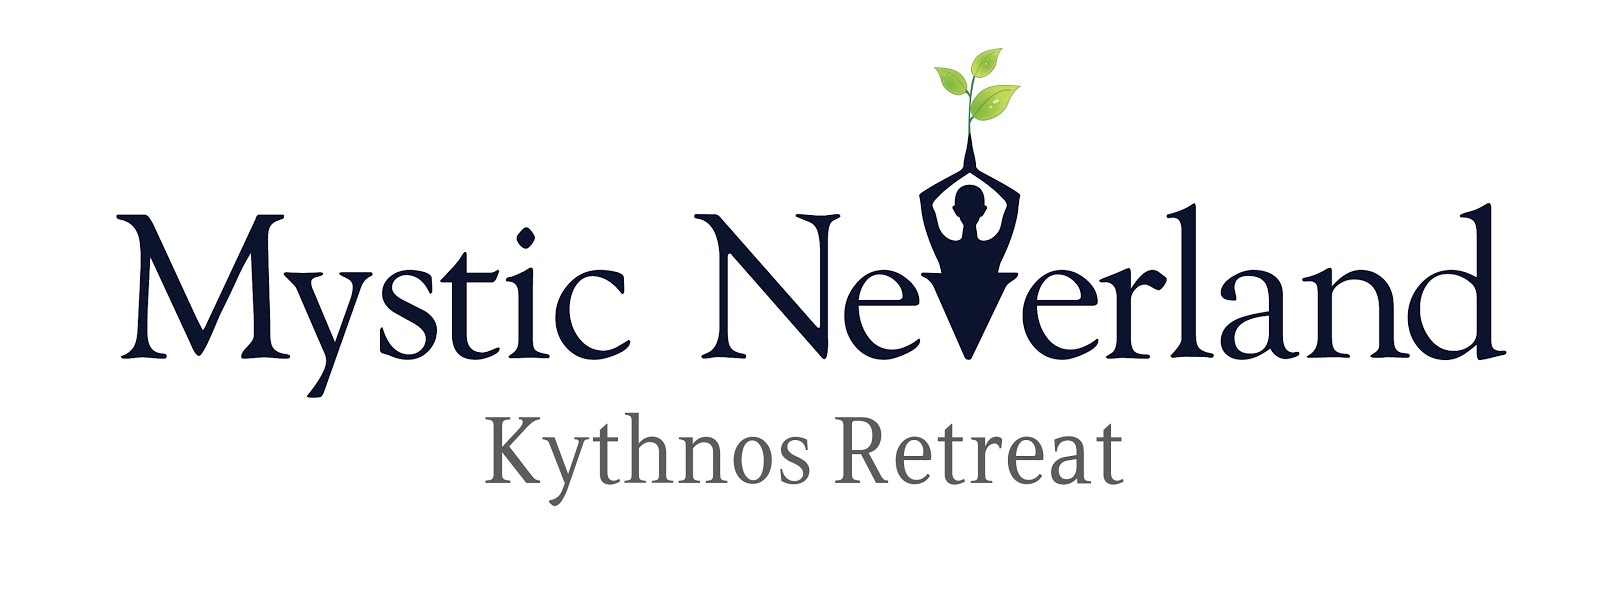 Mystic Neverland Kythnos Retreat